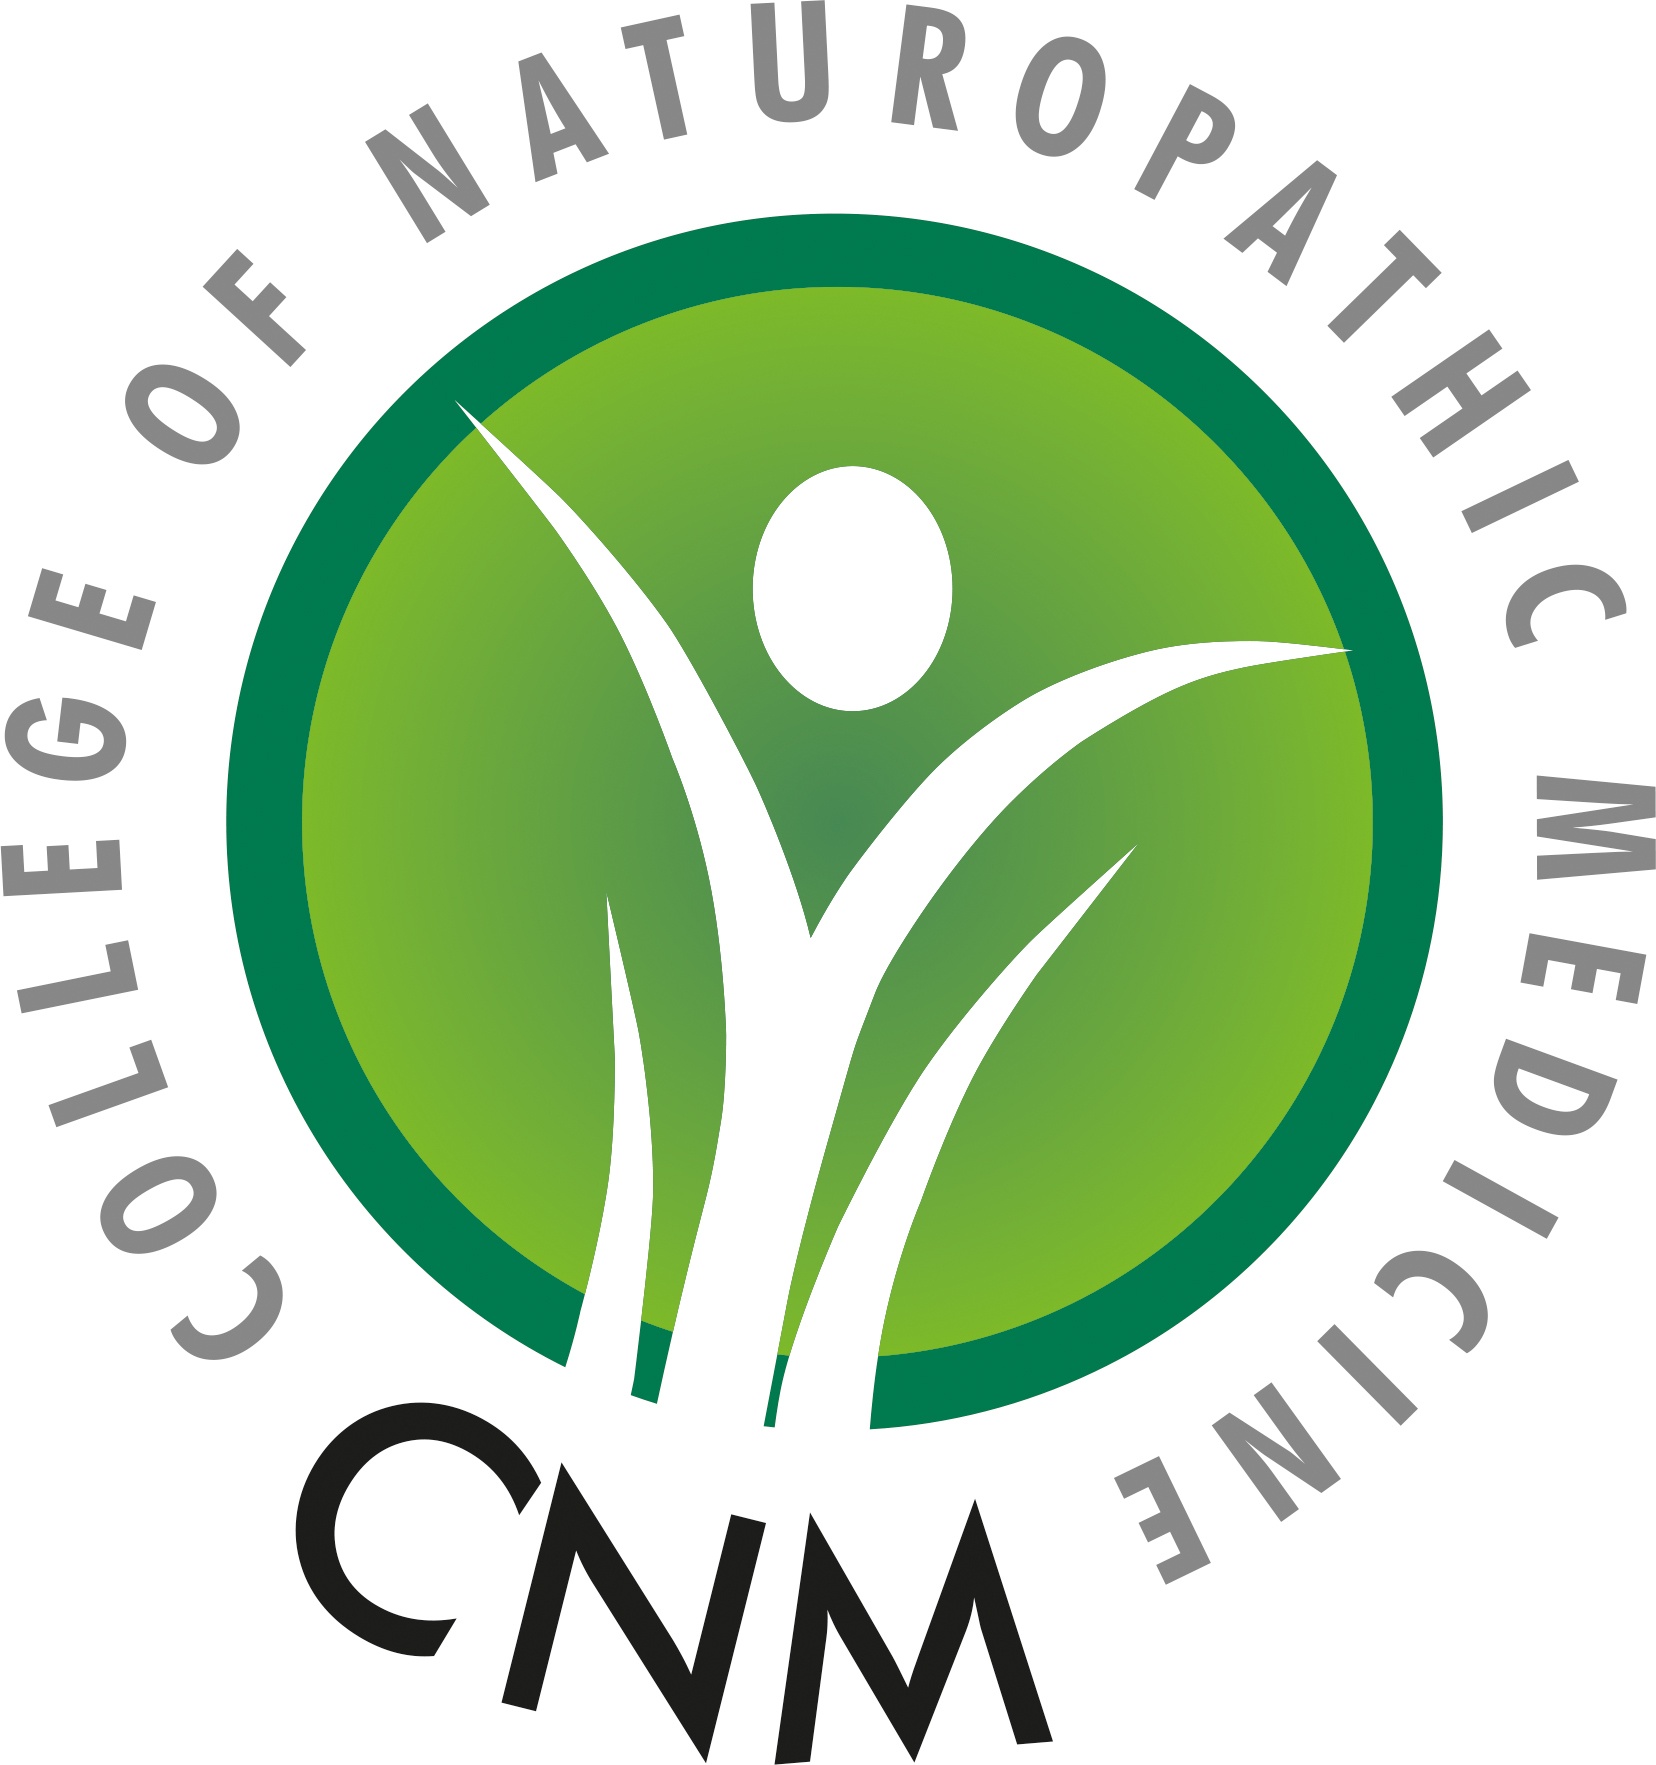 CNM - Diploma Courses in Nutrition, Herbal Medicine, Acupuncture